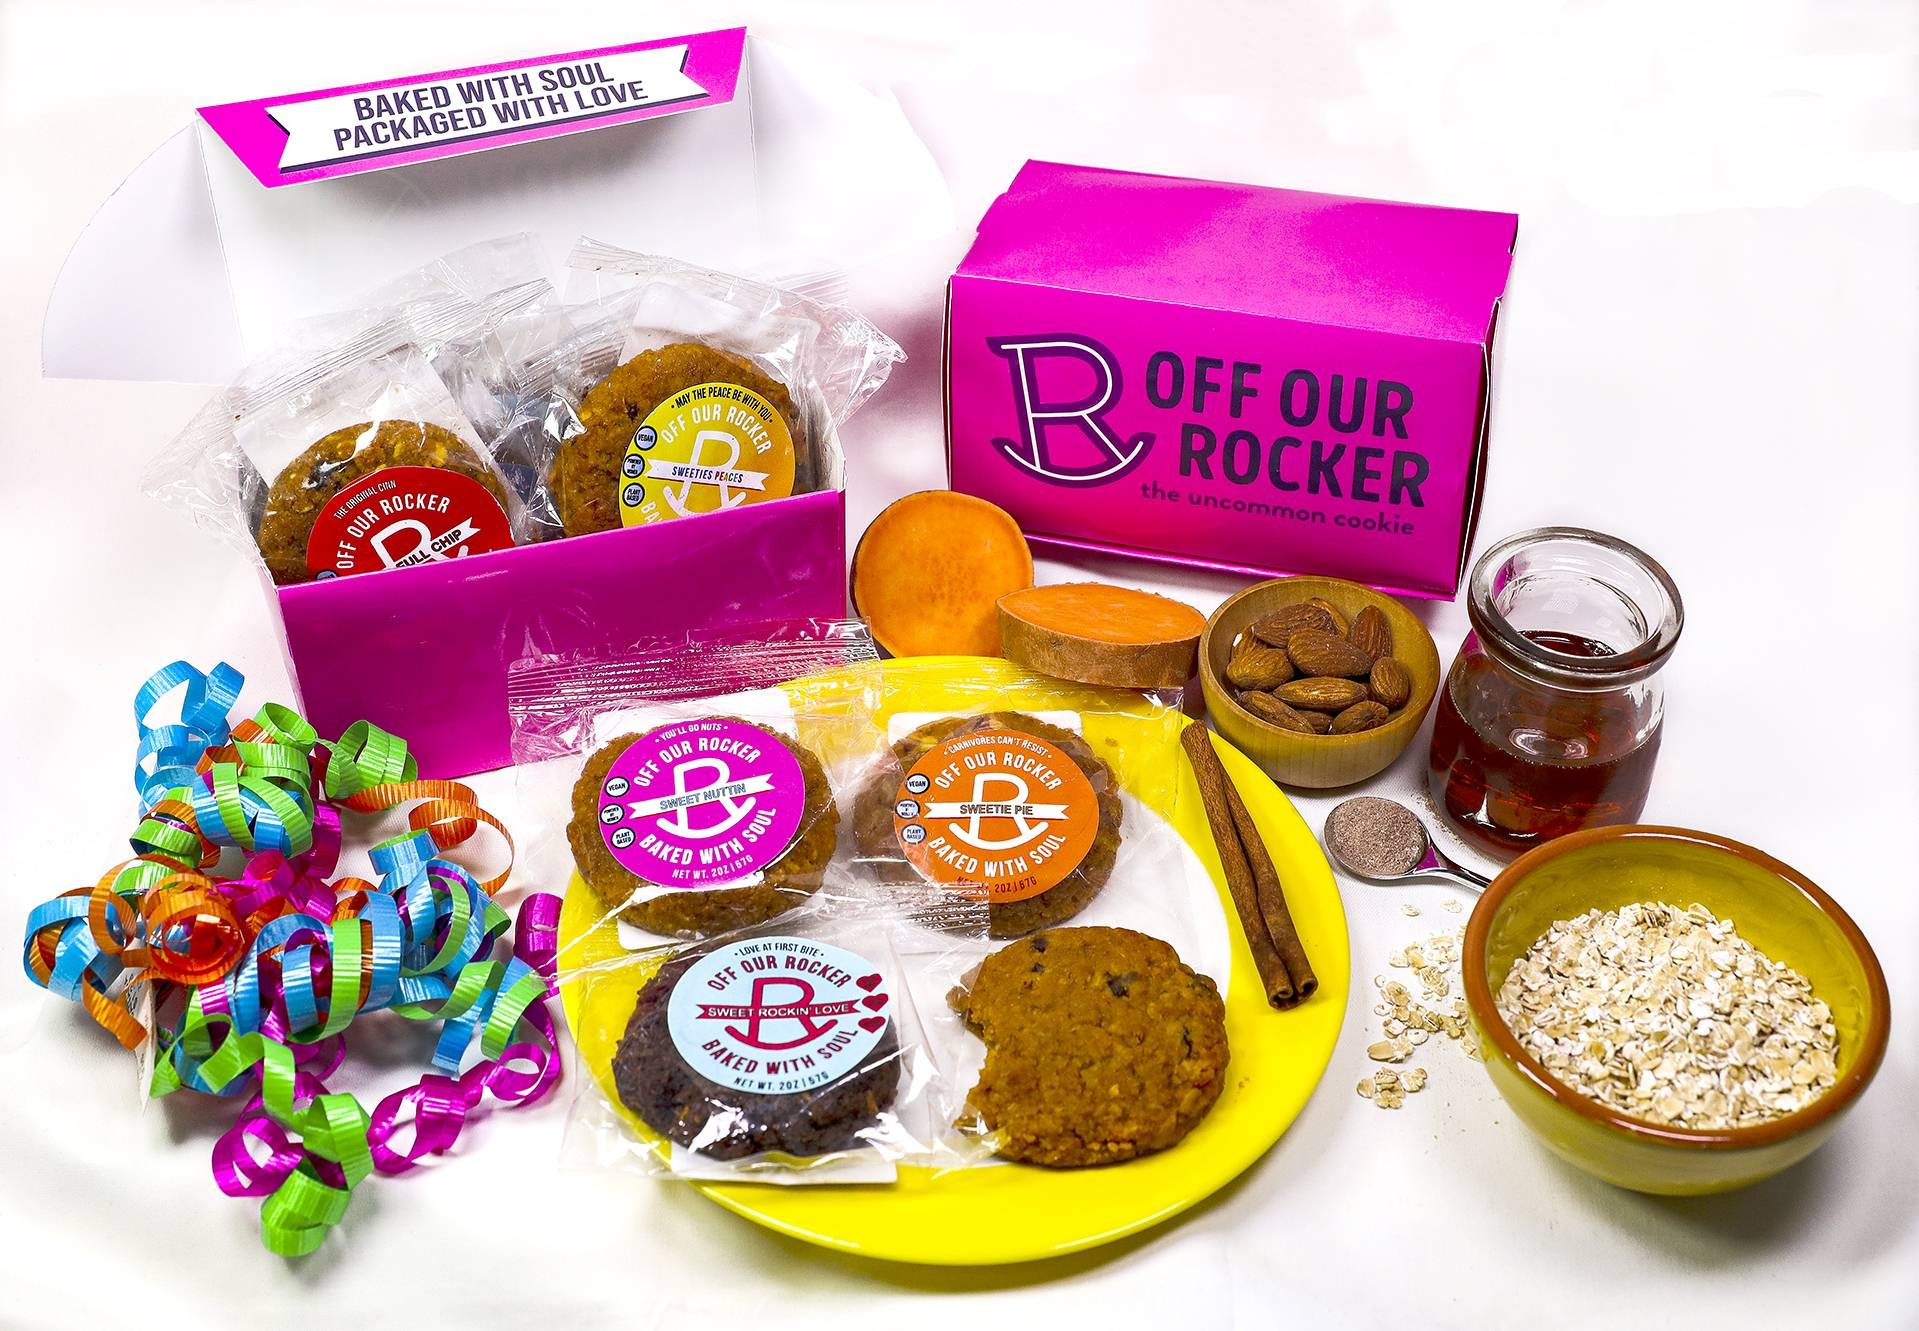 Off Our Rocker Cookies